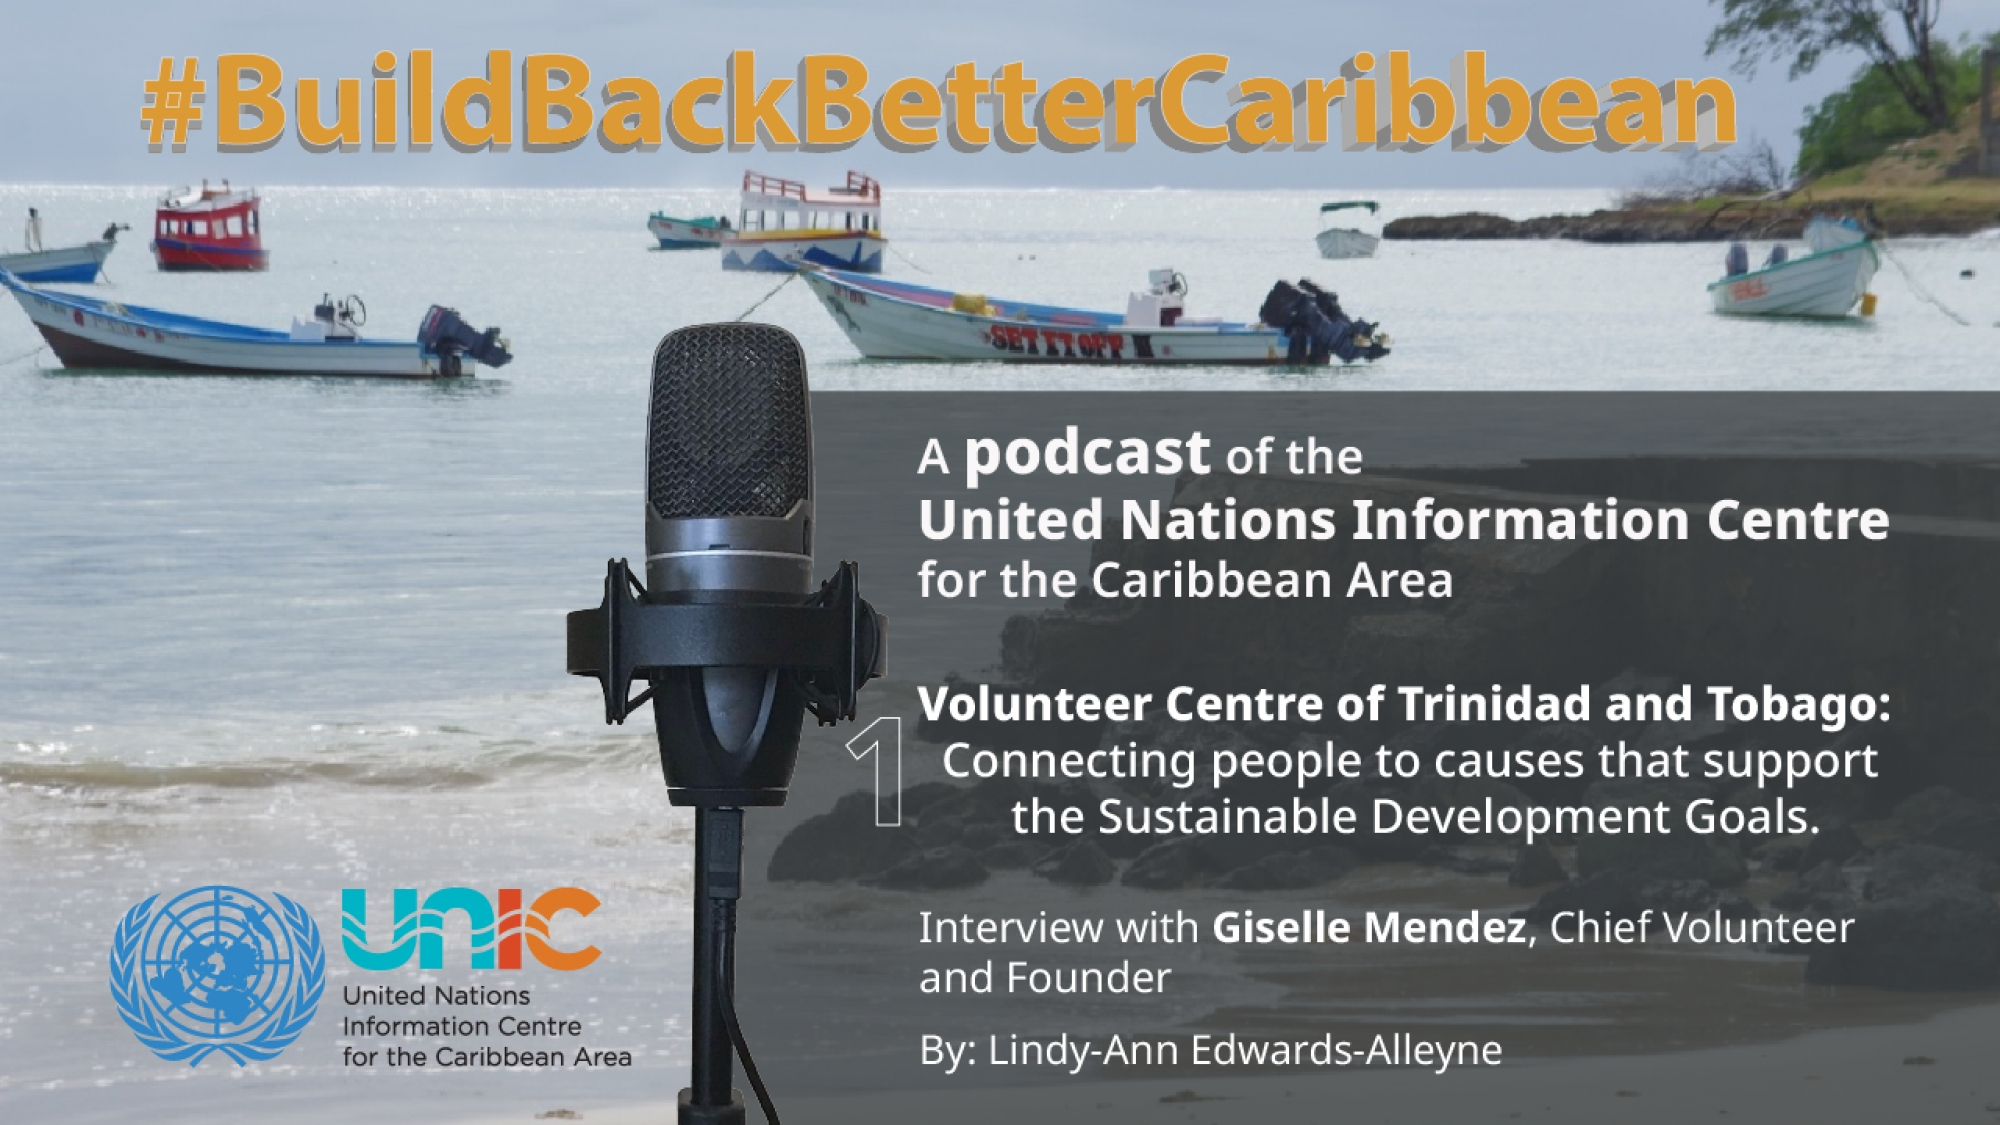 The Volunteer Centre of Trinidad and Tobago: Connecting people to causes that support the Sustainable Development Goals